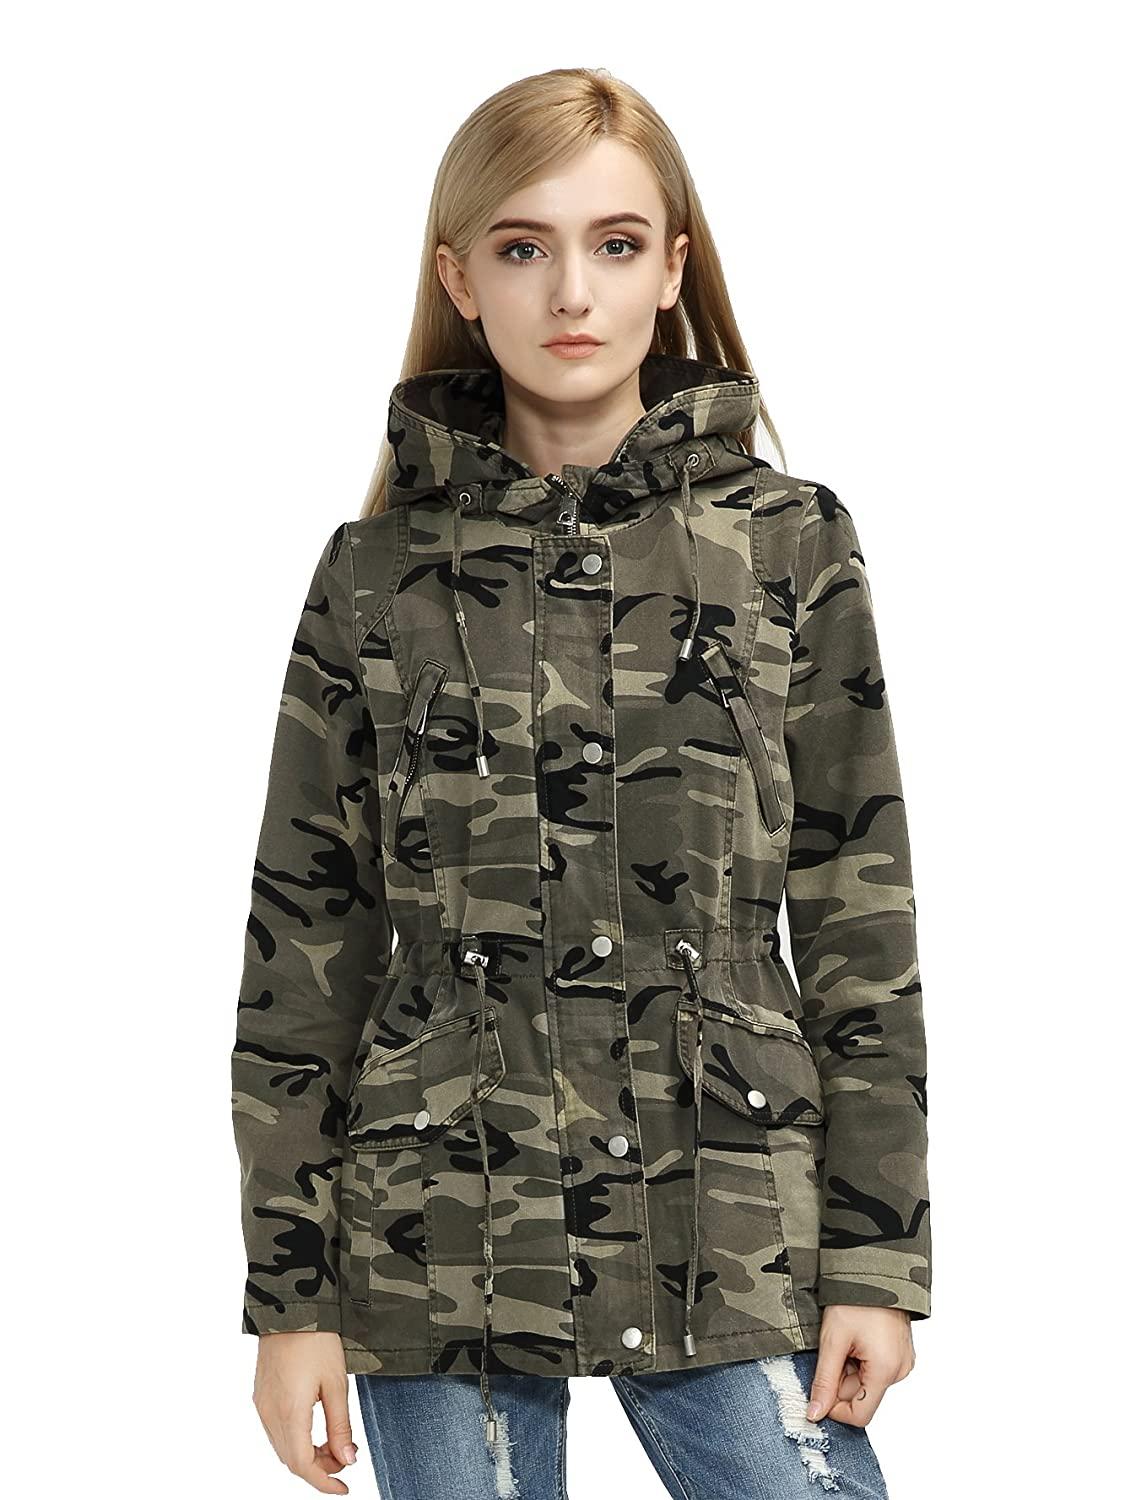 Bellivera Women's Casual Lightweight Parka Army Military Utility Hoodie Jacket